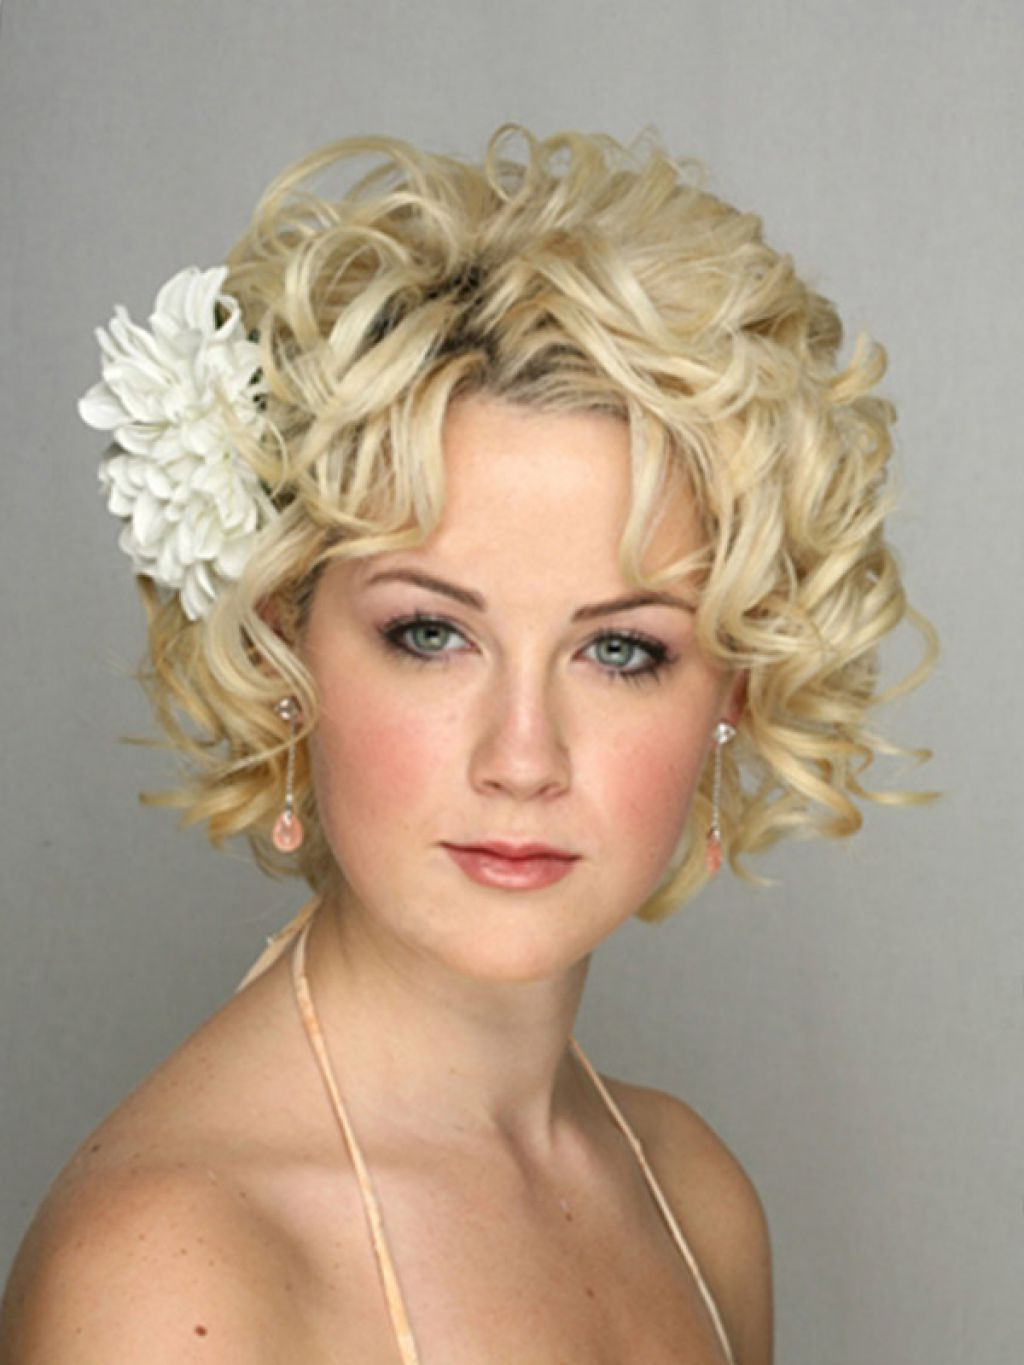 Wedding Guest Hairstyles For Medium Length Hair – Hairstyle For Within Hairstyles For A Wedding Guest With Short Hair (View 19 of 25)